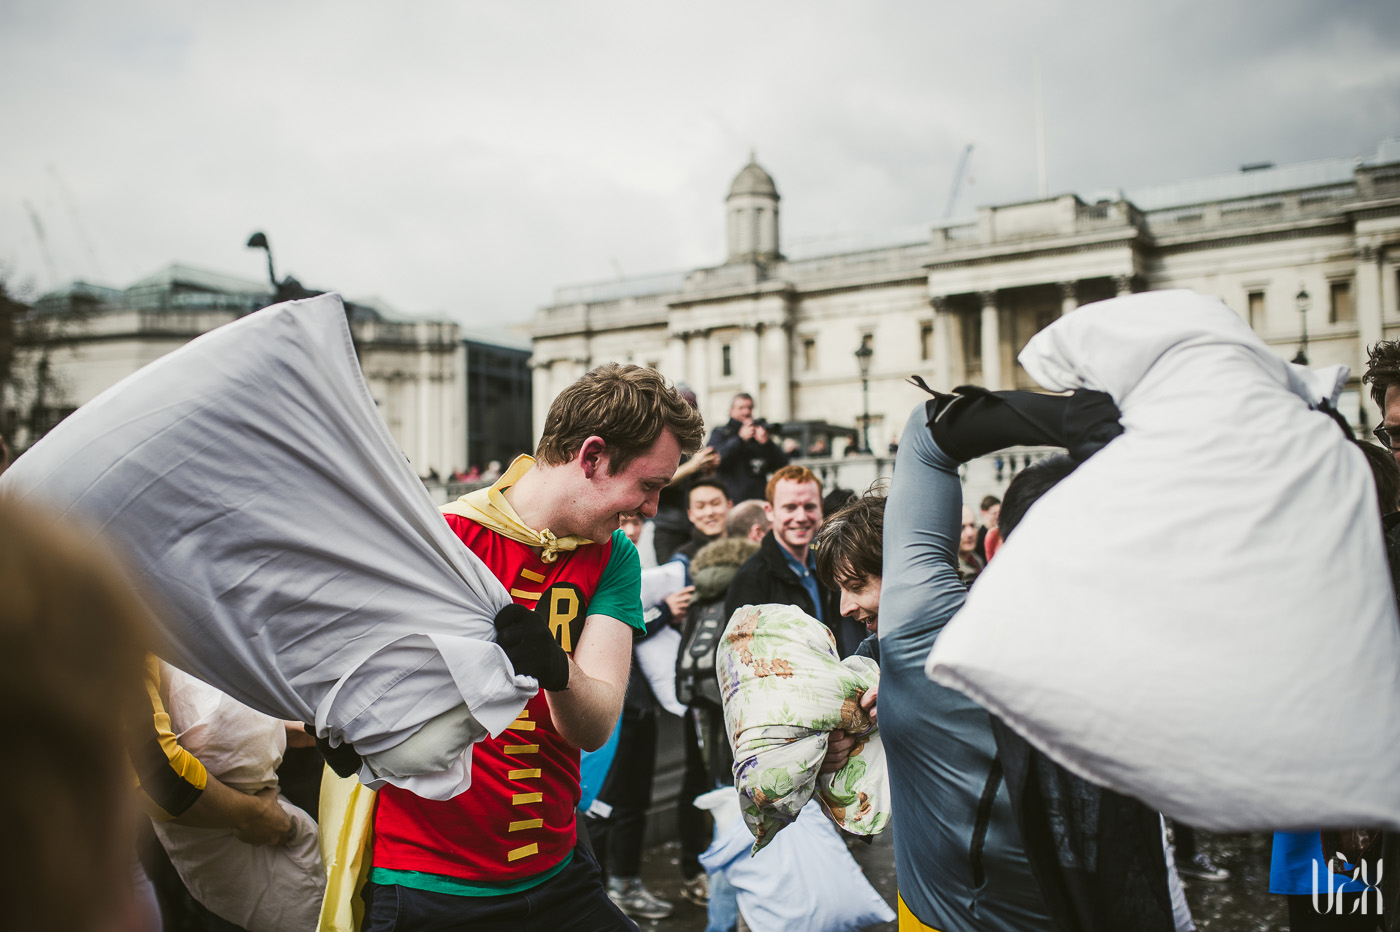 International Pillow Fight Day In London 2015 Street Photography Pagalviu Musis 15